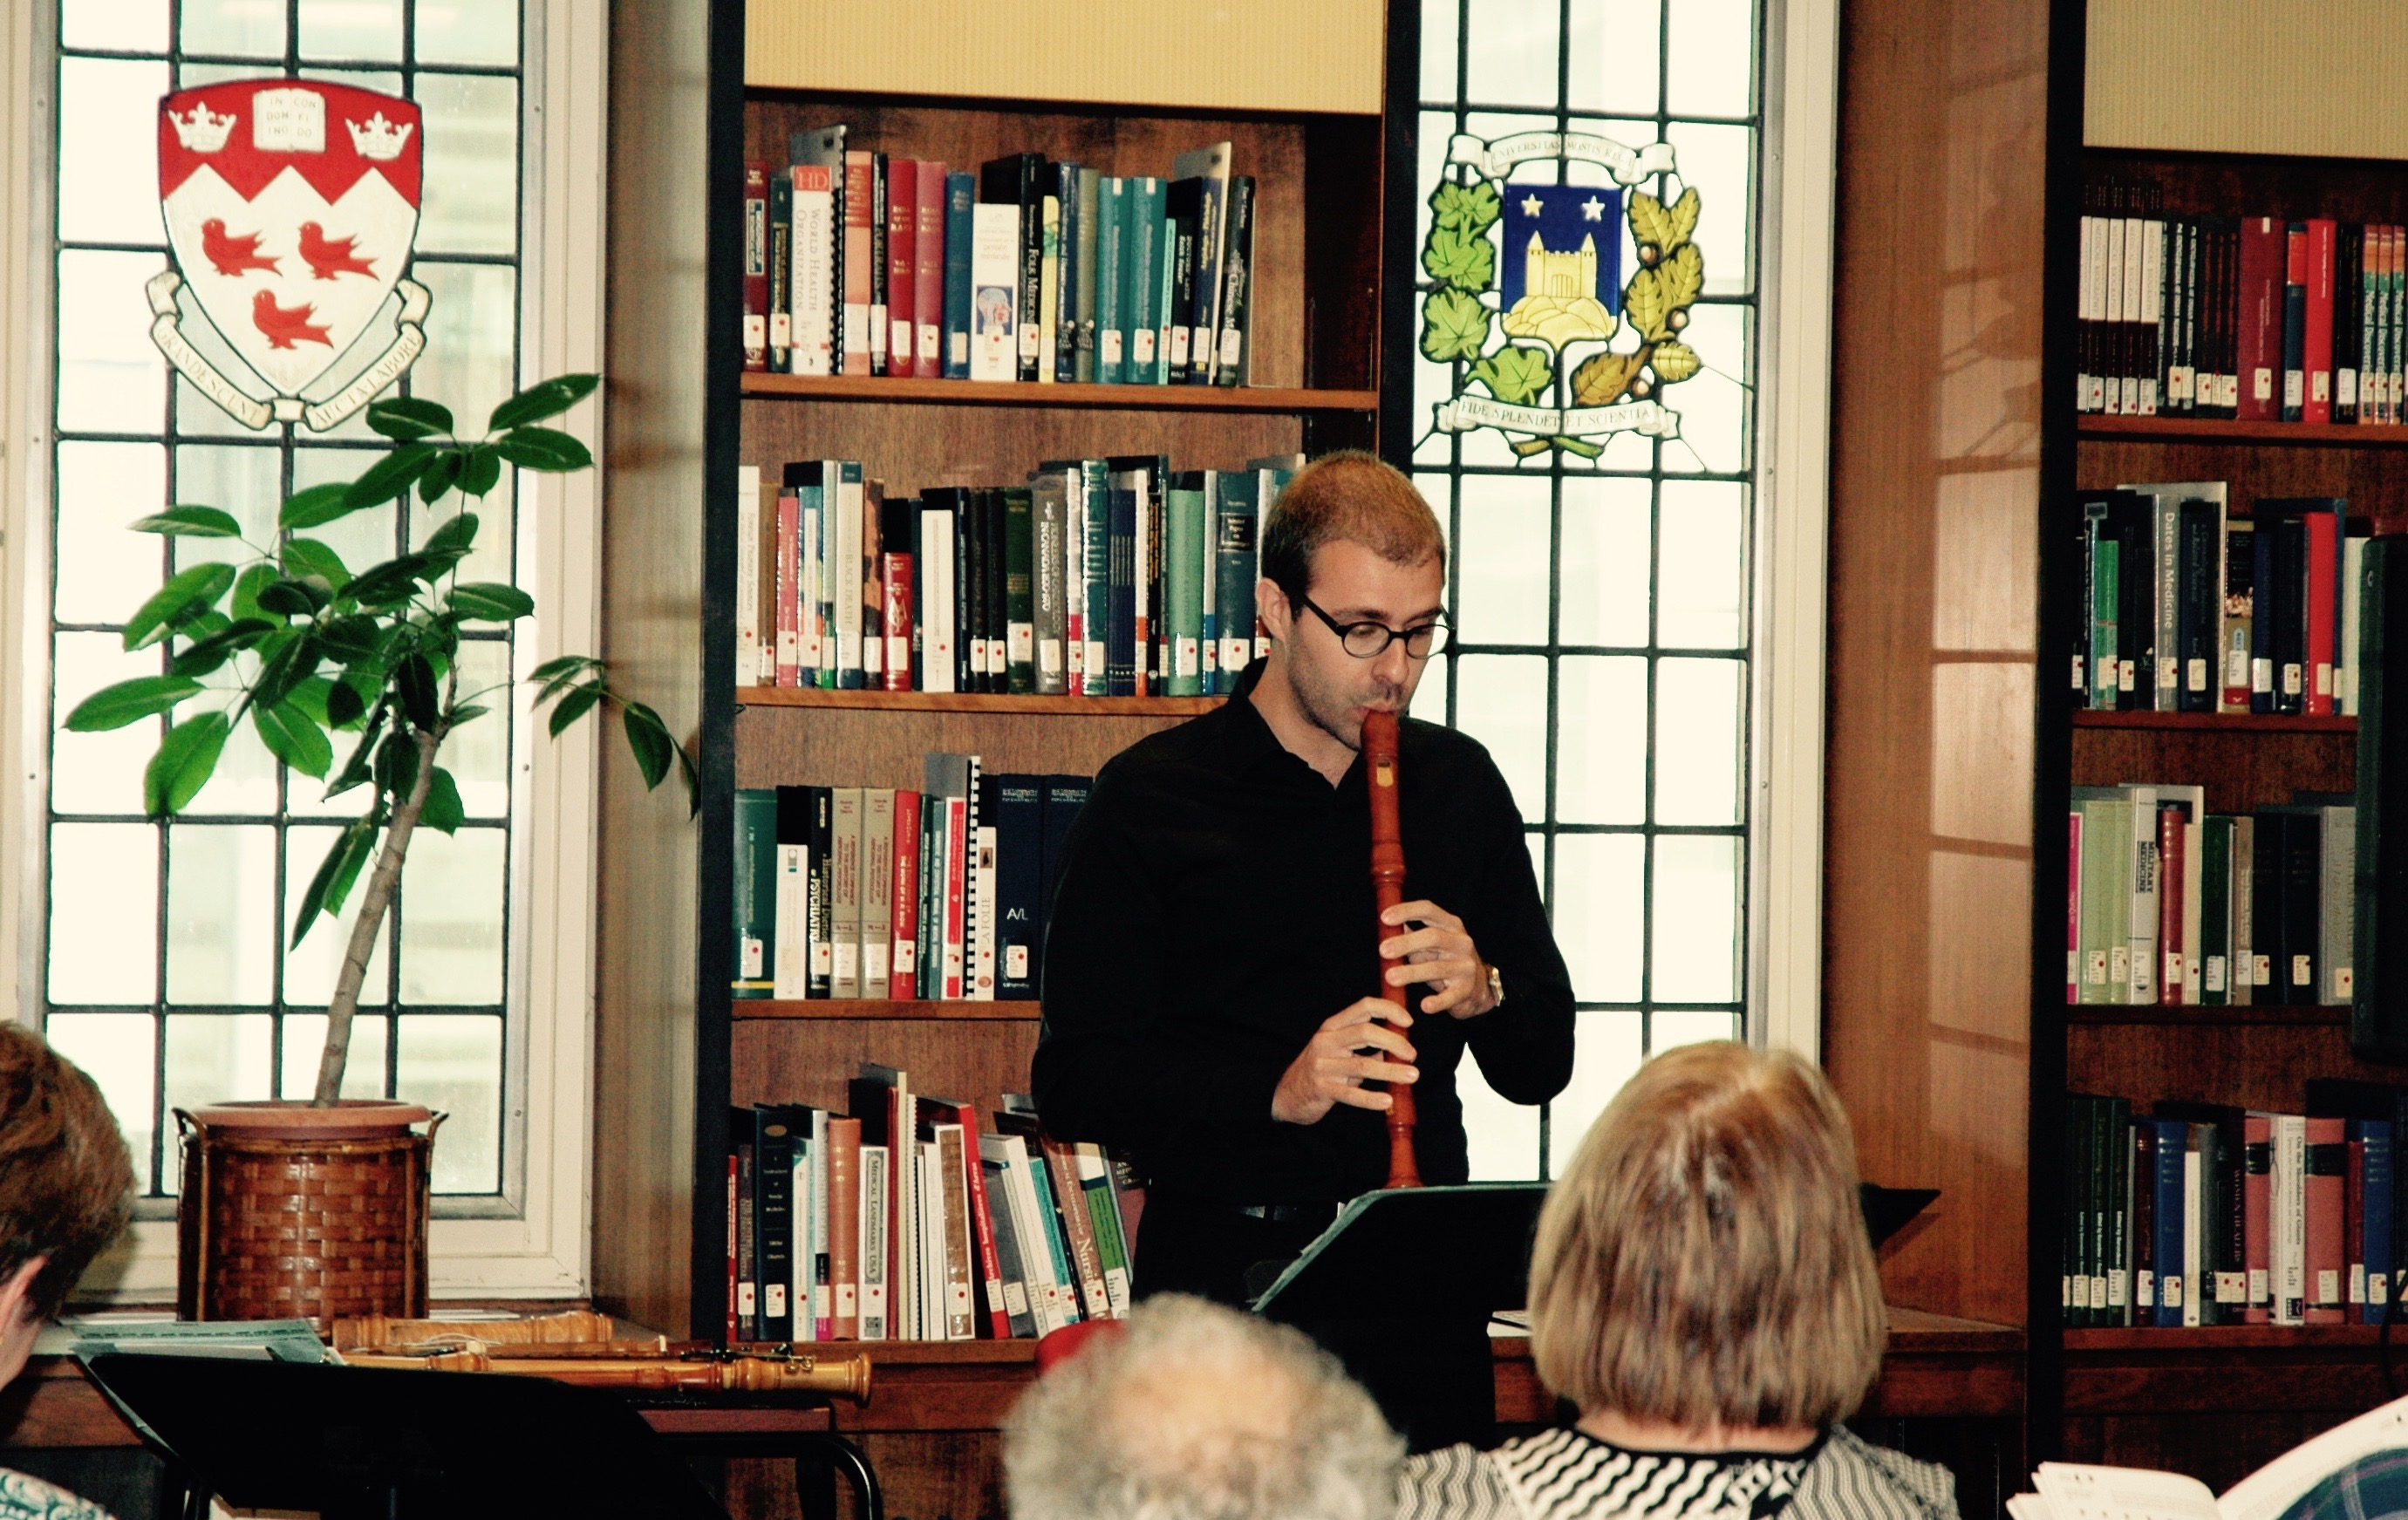 Vincent Lauzer performs at the Osler Library, part of Montreal Baroque Festival 2016.